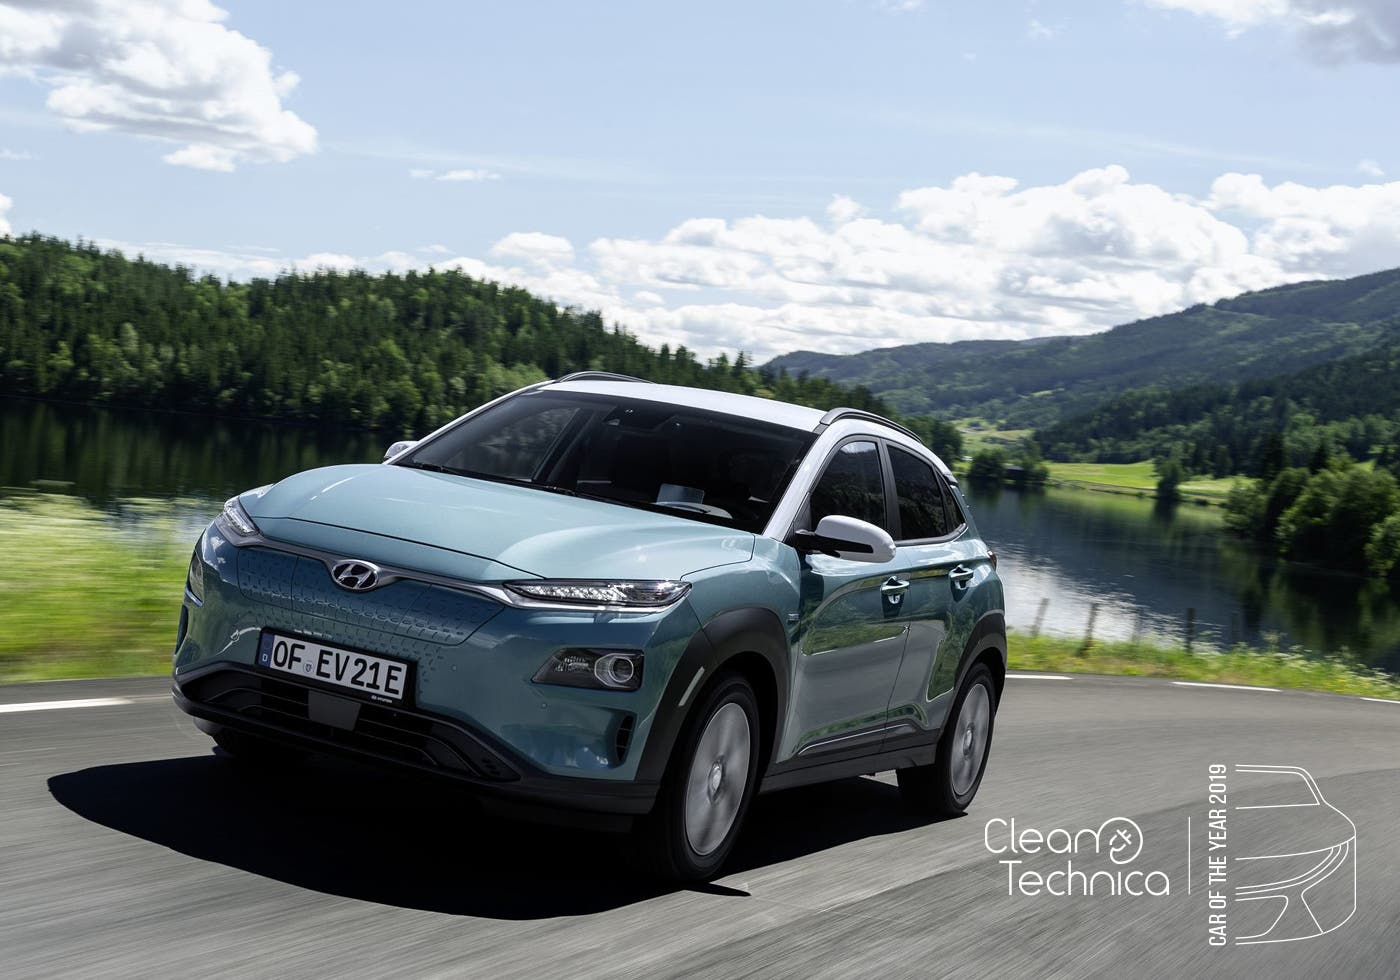 photo of Hyundai Kona EV Wins 2019 CleanTechnica Car of the Year Award image